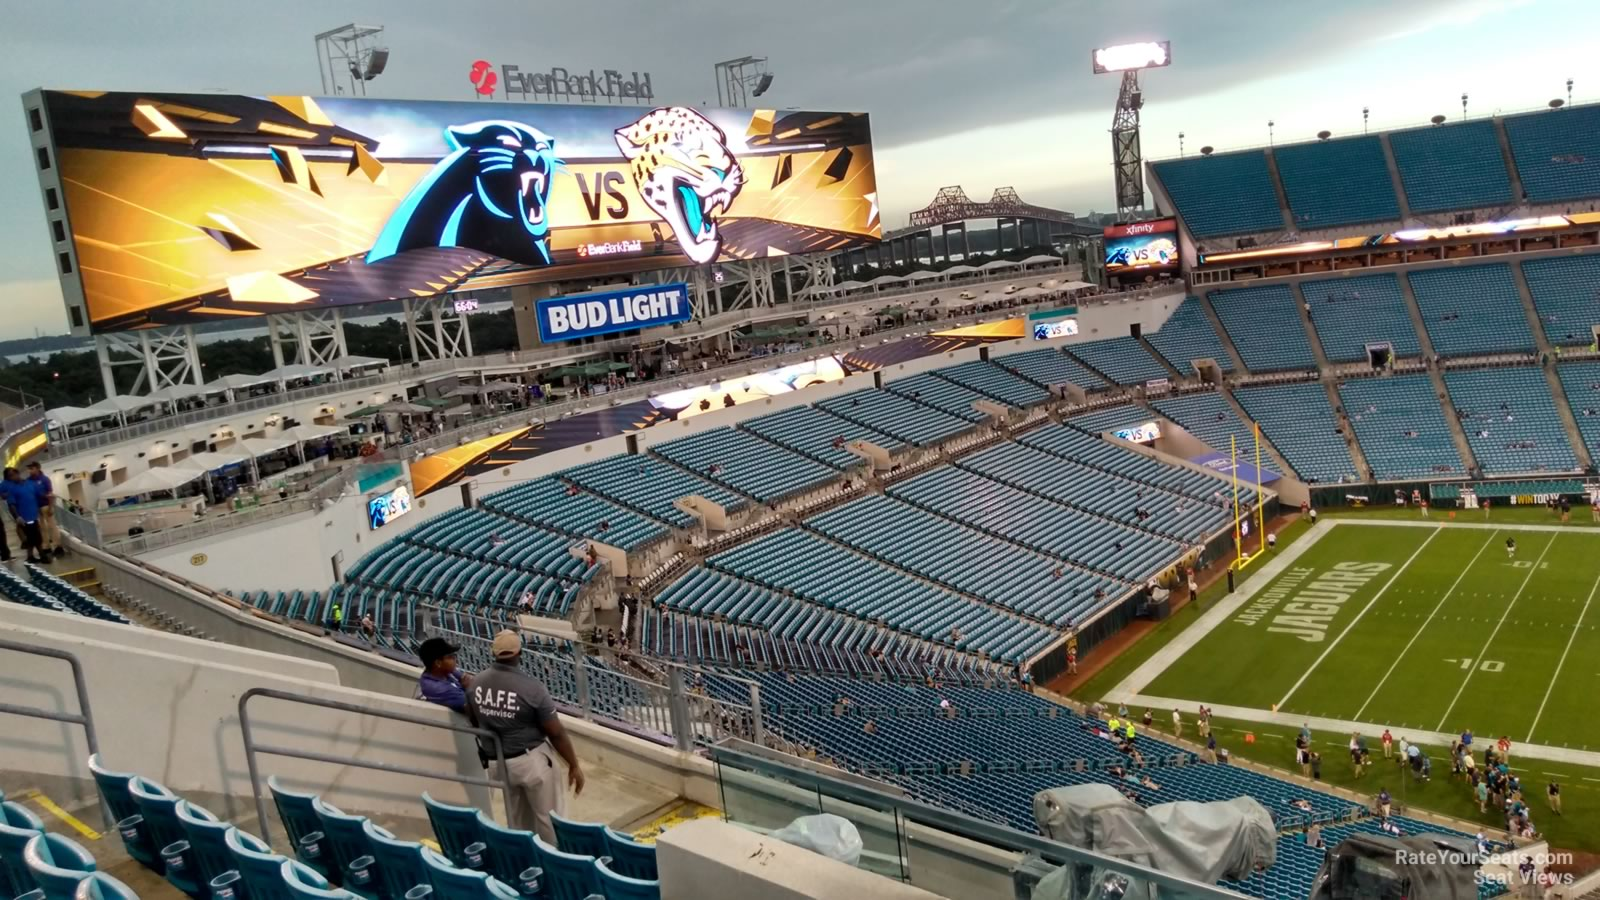 Section 411 seat view